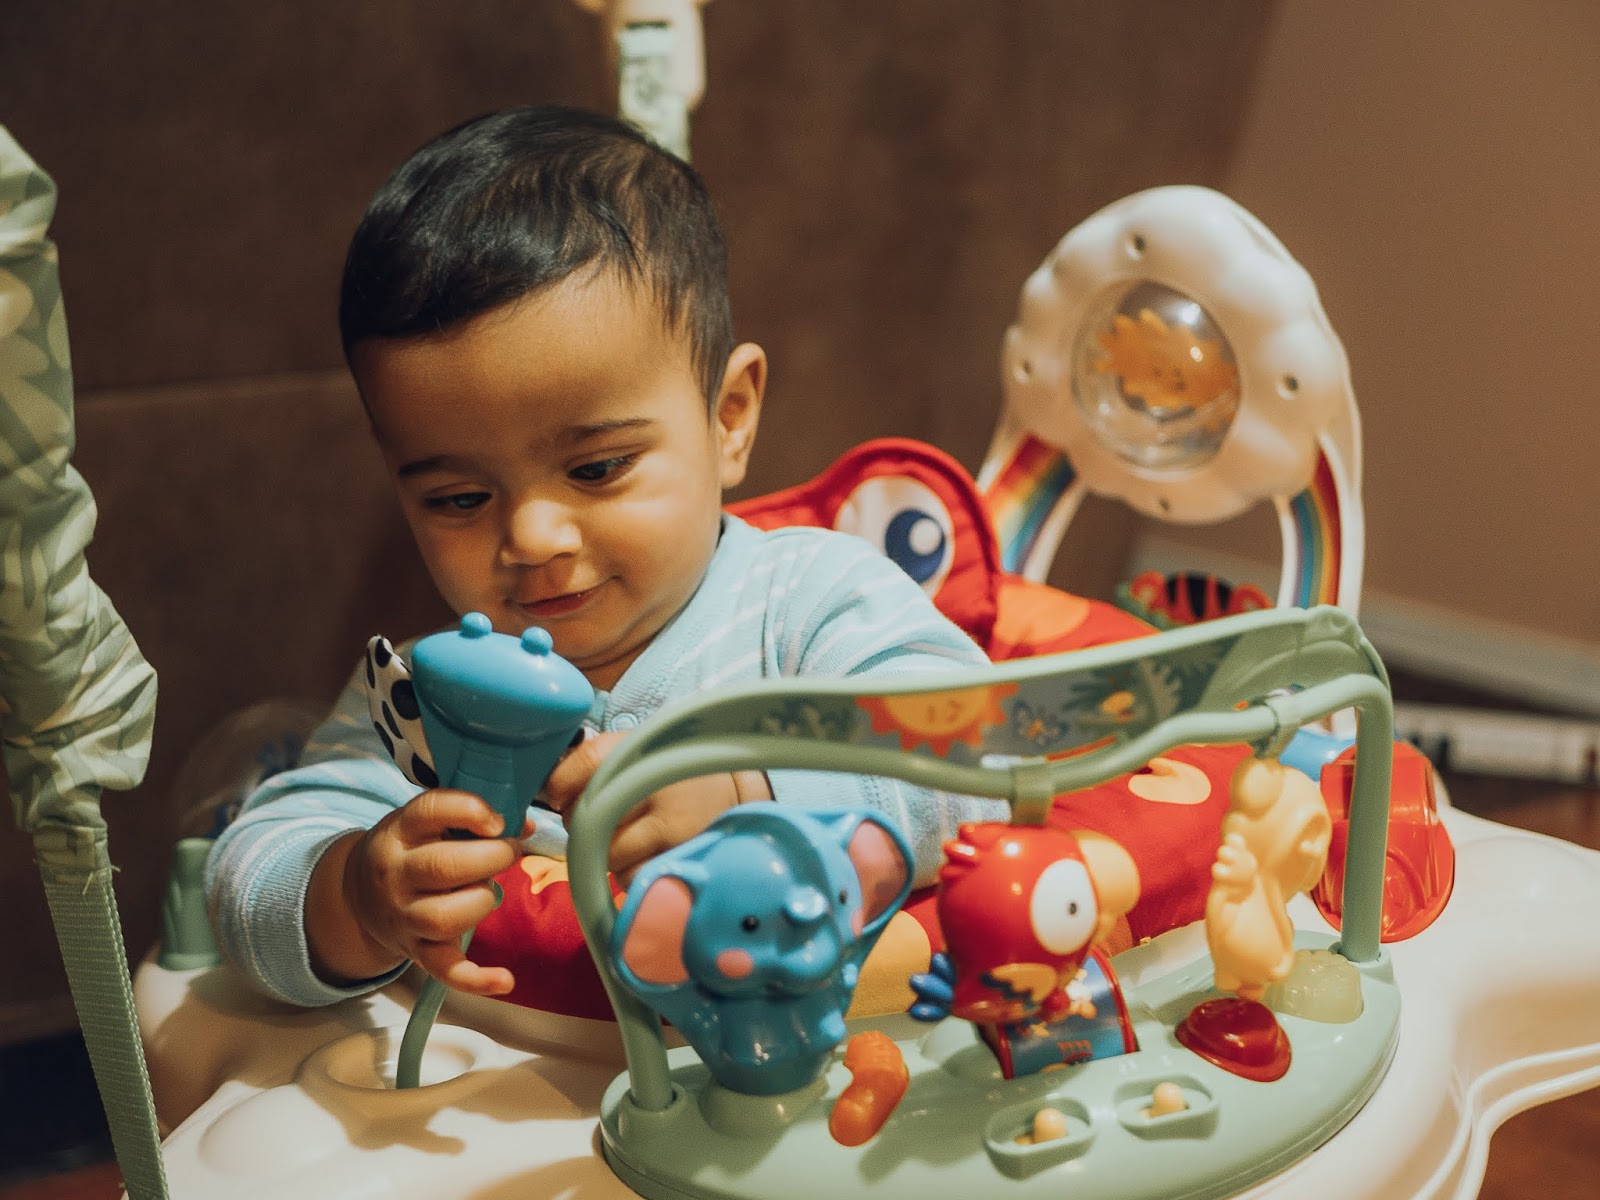 4. MUSICAL RHYMES BOOK My little one is way too fascinated by its music and talk. He spends hours turning pages and pressing the buttons.  sc 1 st  Sveeteskapes & 16 Best Baby Toys | Baby Gift Ideas - Sveeteskapes